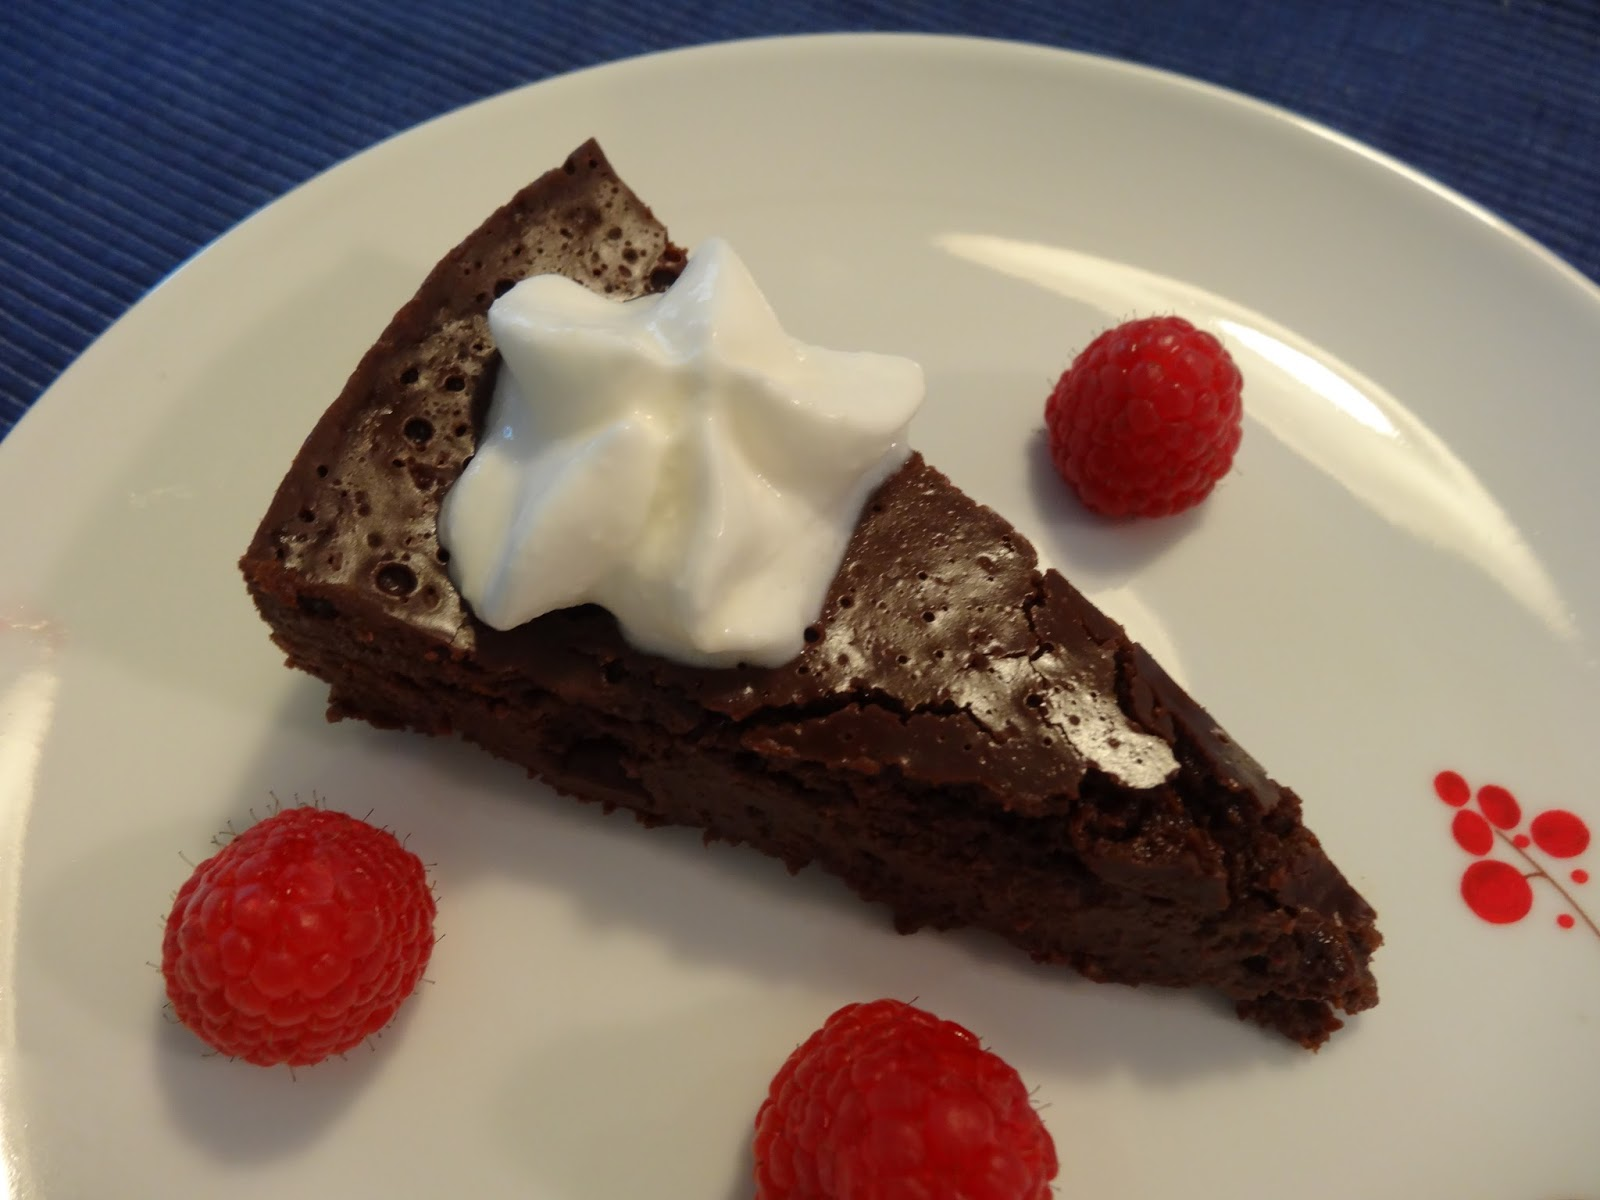 The Fanciful Fig: Flourless Chocolate Cake